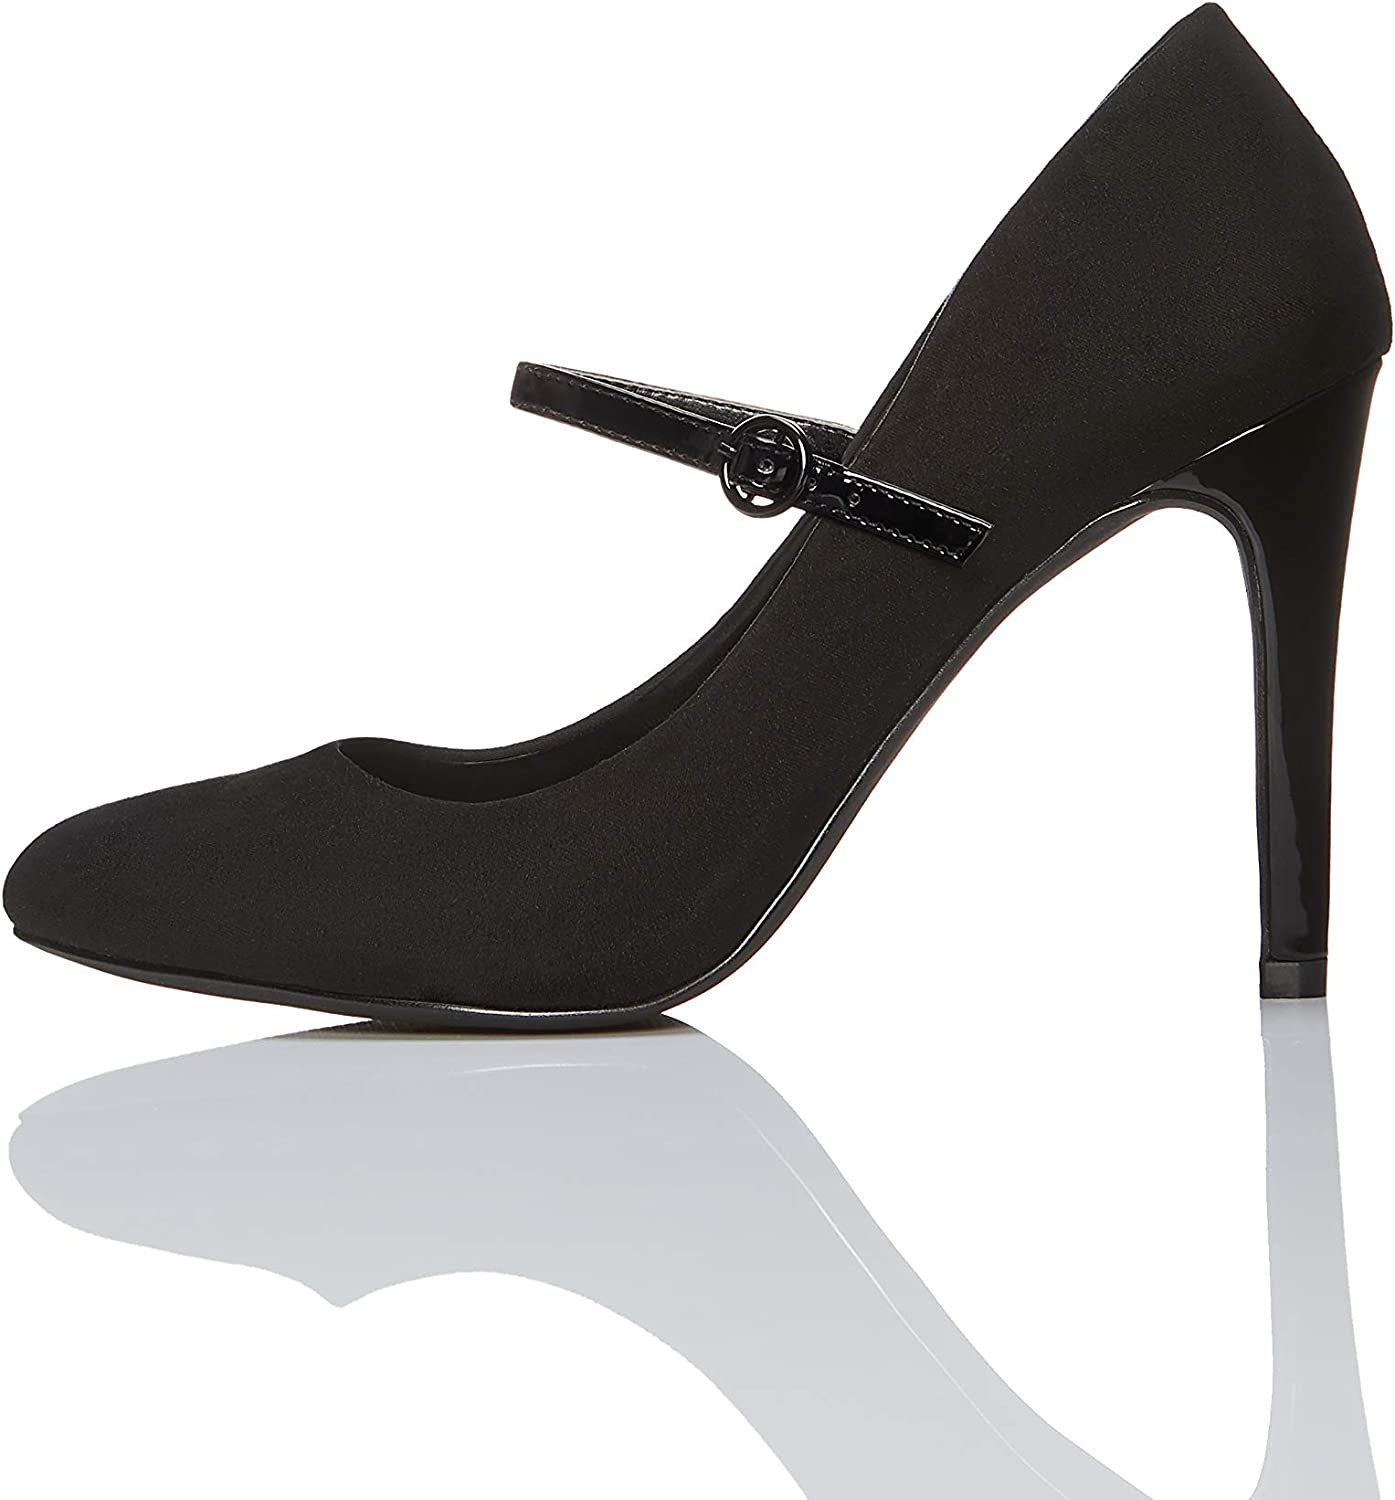 find. Women's Mary Jane Court Shoes